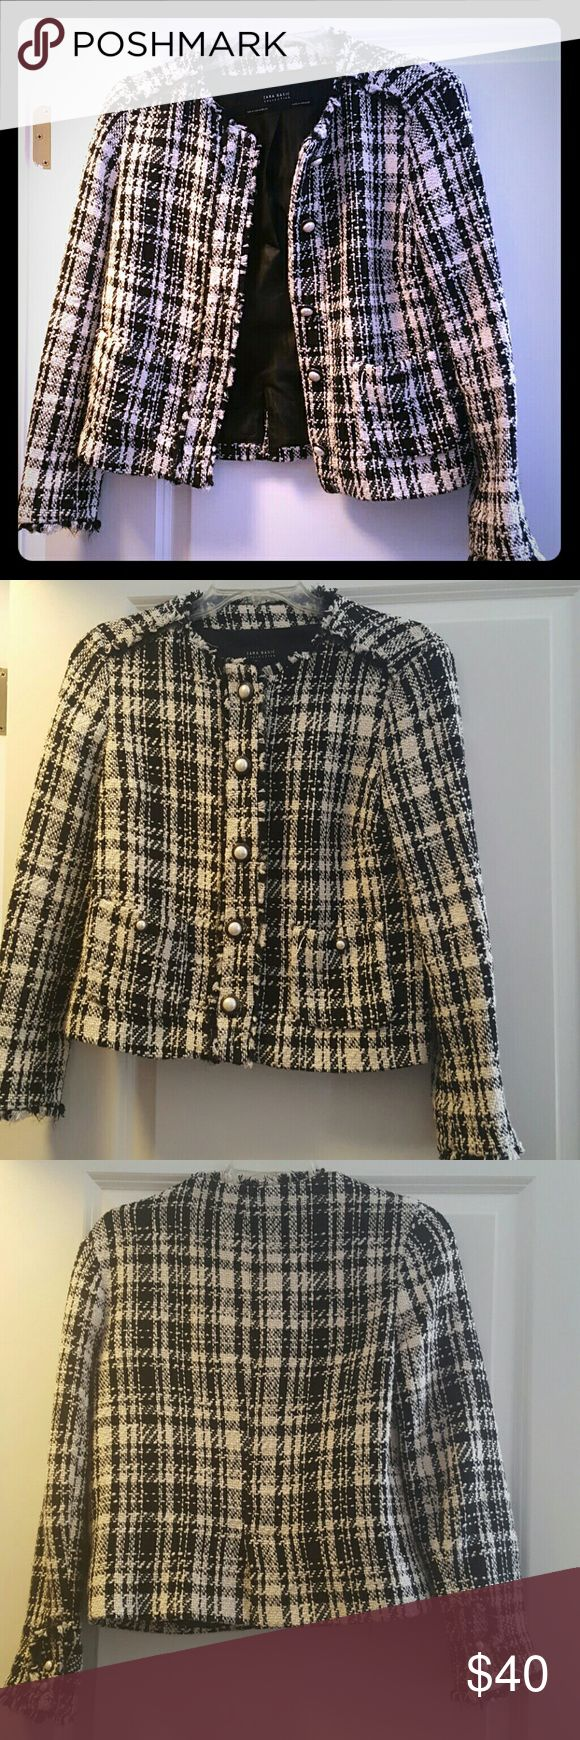 Jacket Perfect to pair with a black dress for work or leather pants to get drinks with friends. Only worn once. Price is negotiable. Zara Jackets & Coats